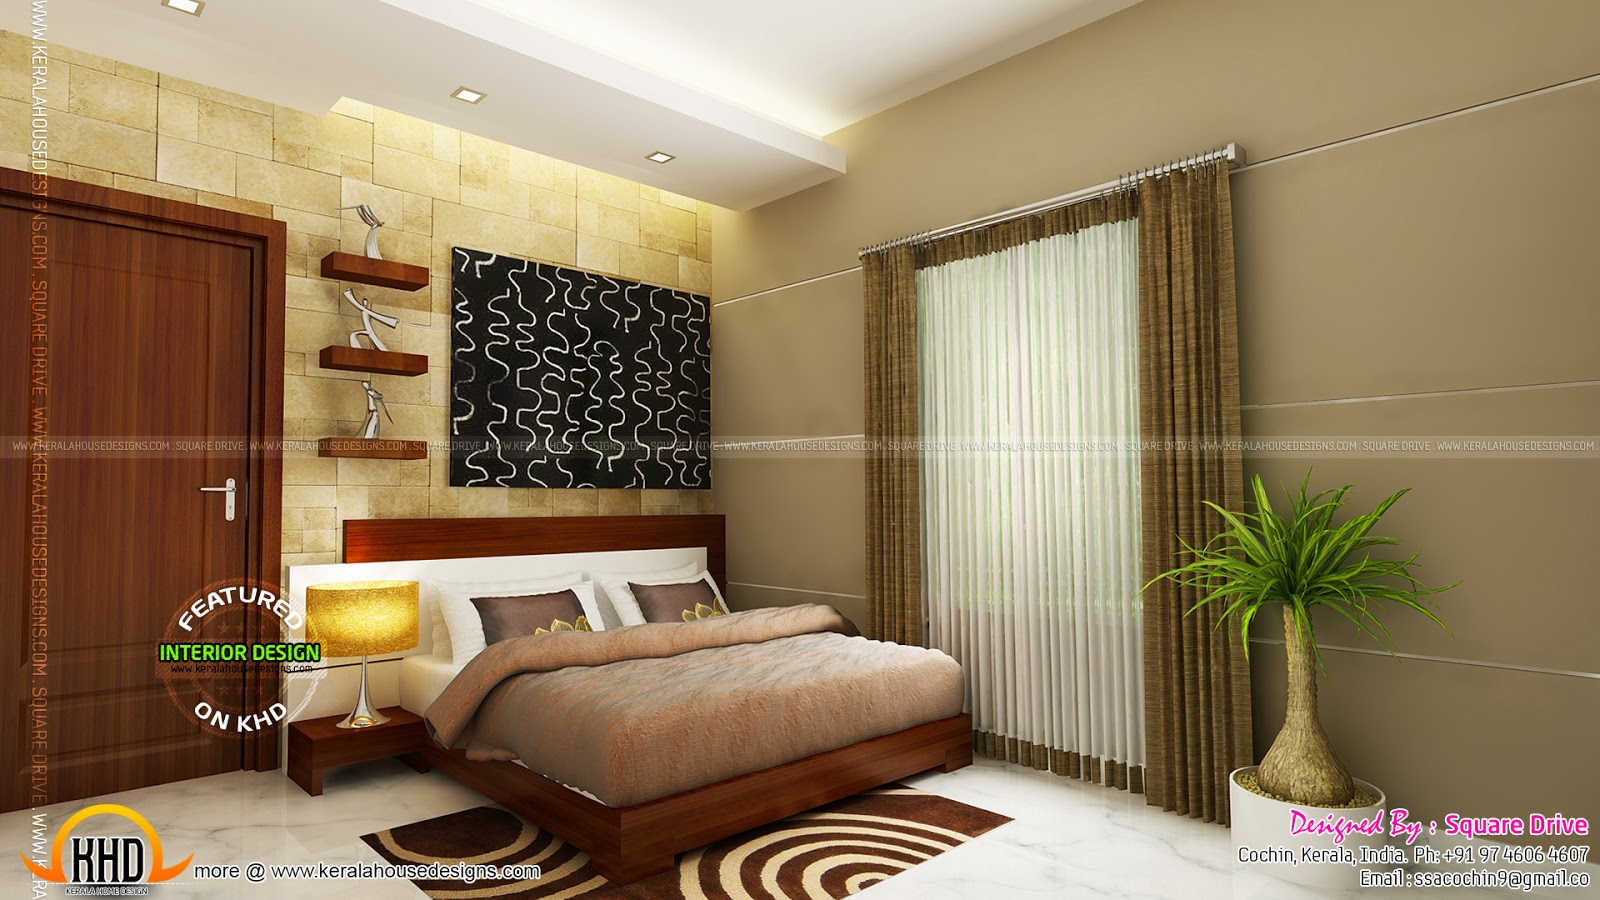 3d Wallpaper For Home Wall India Cochin Interior Design Kerala Home Design And Floor Plans